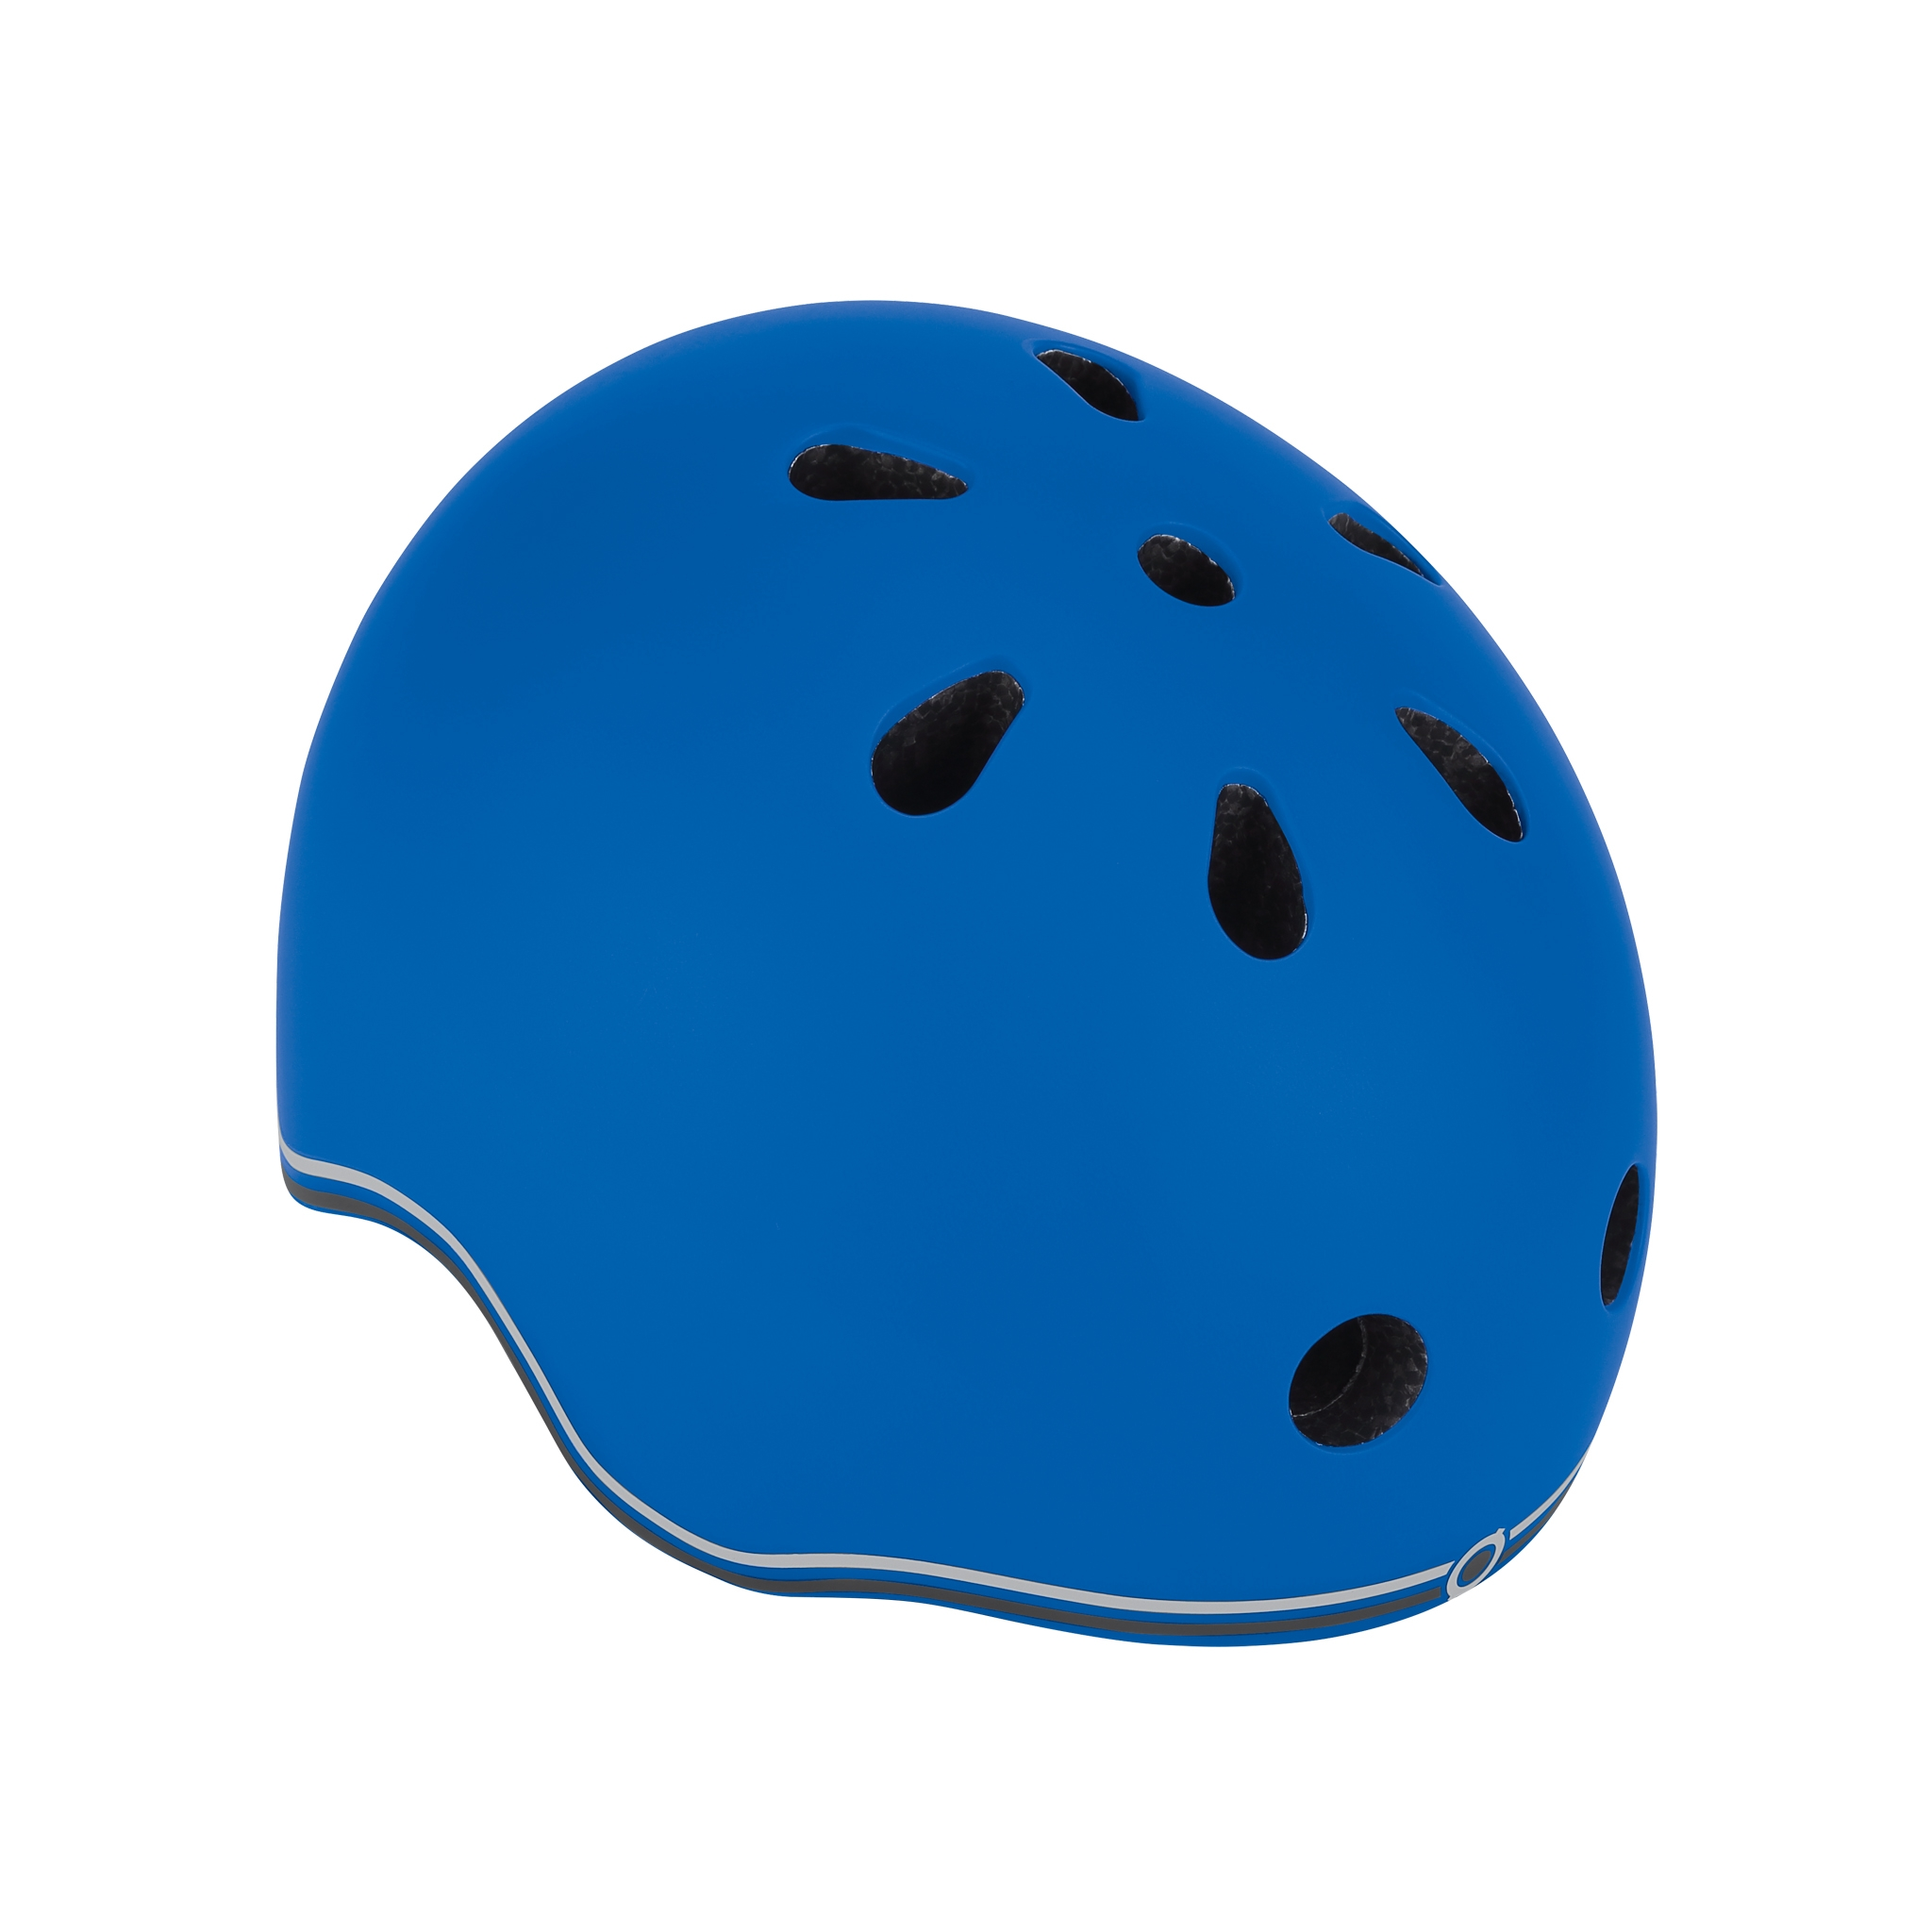 EVO-helmets-scooter-helmets-for-toddlers-in-mold-polycarbonate-outer-shell-navy-blue